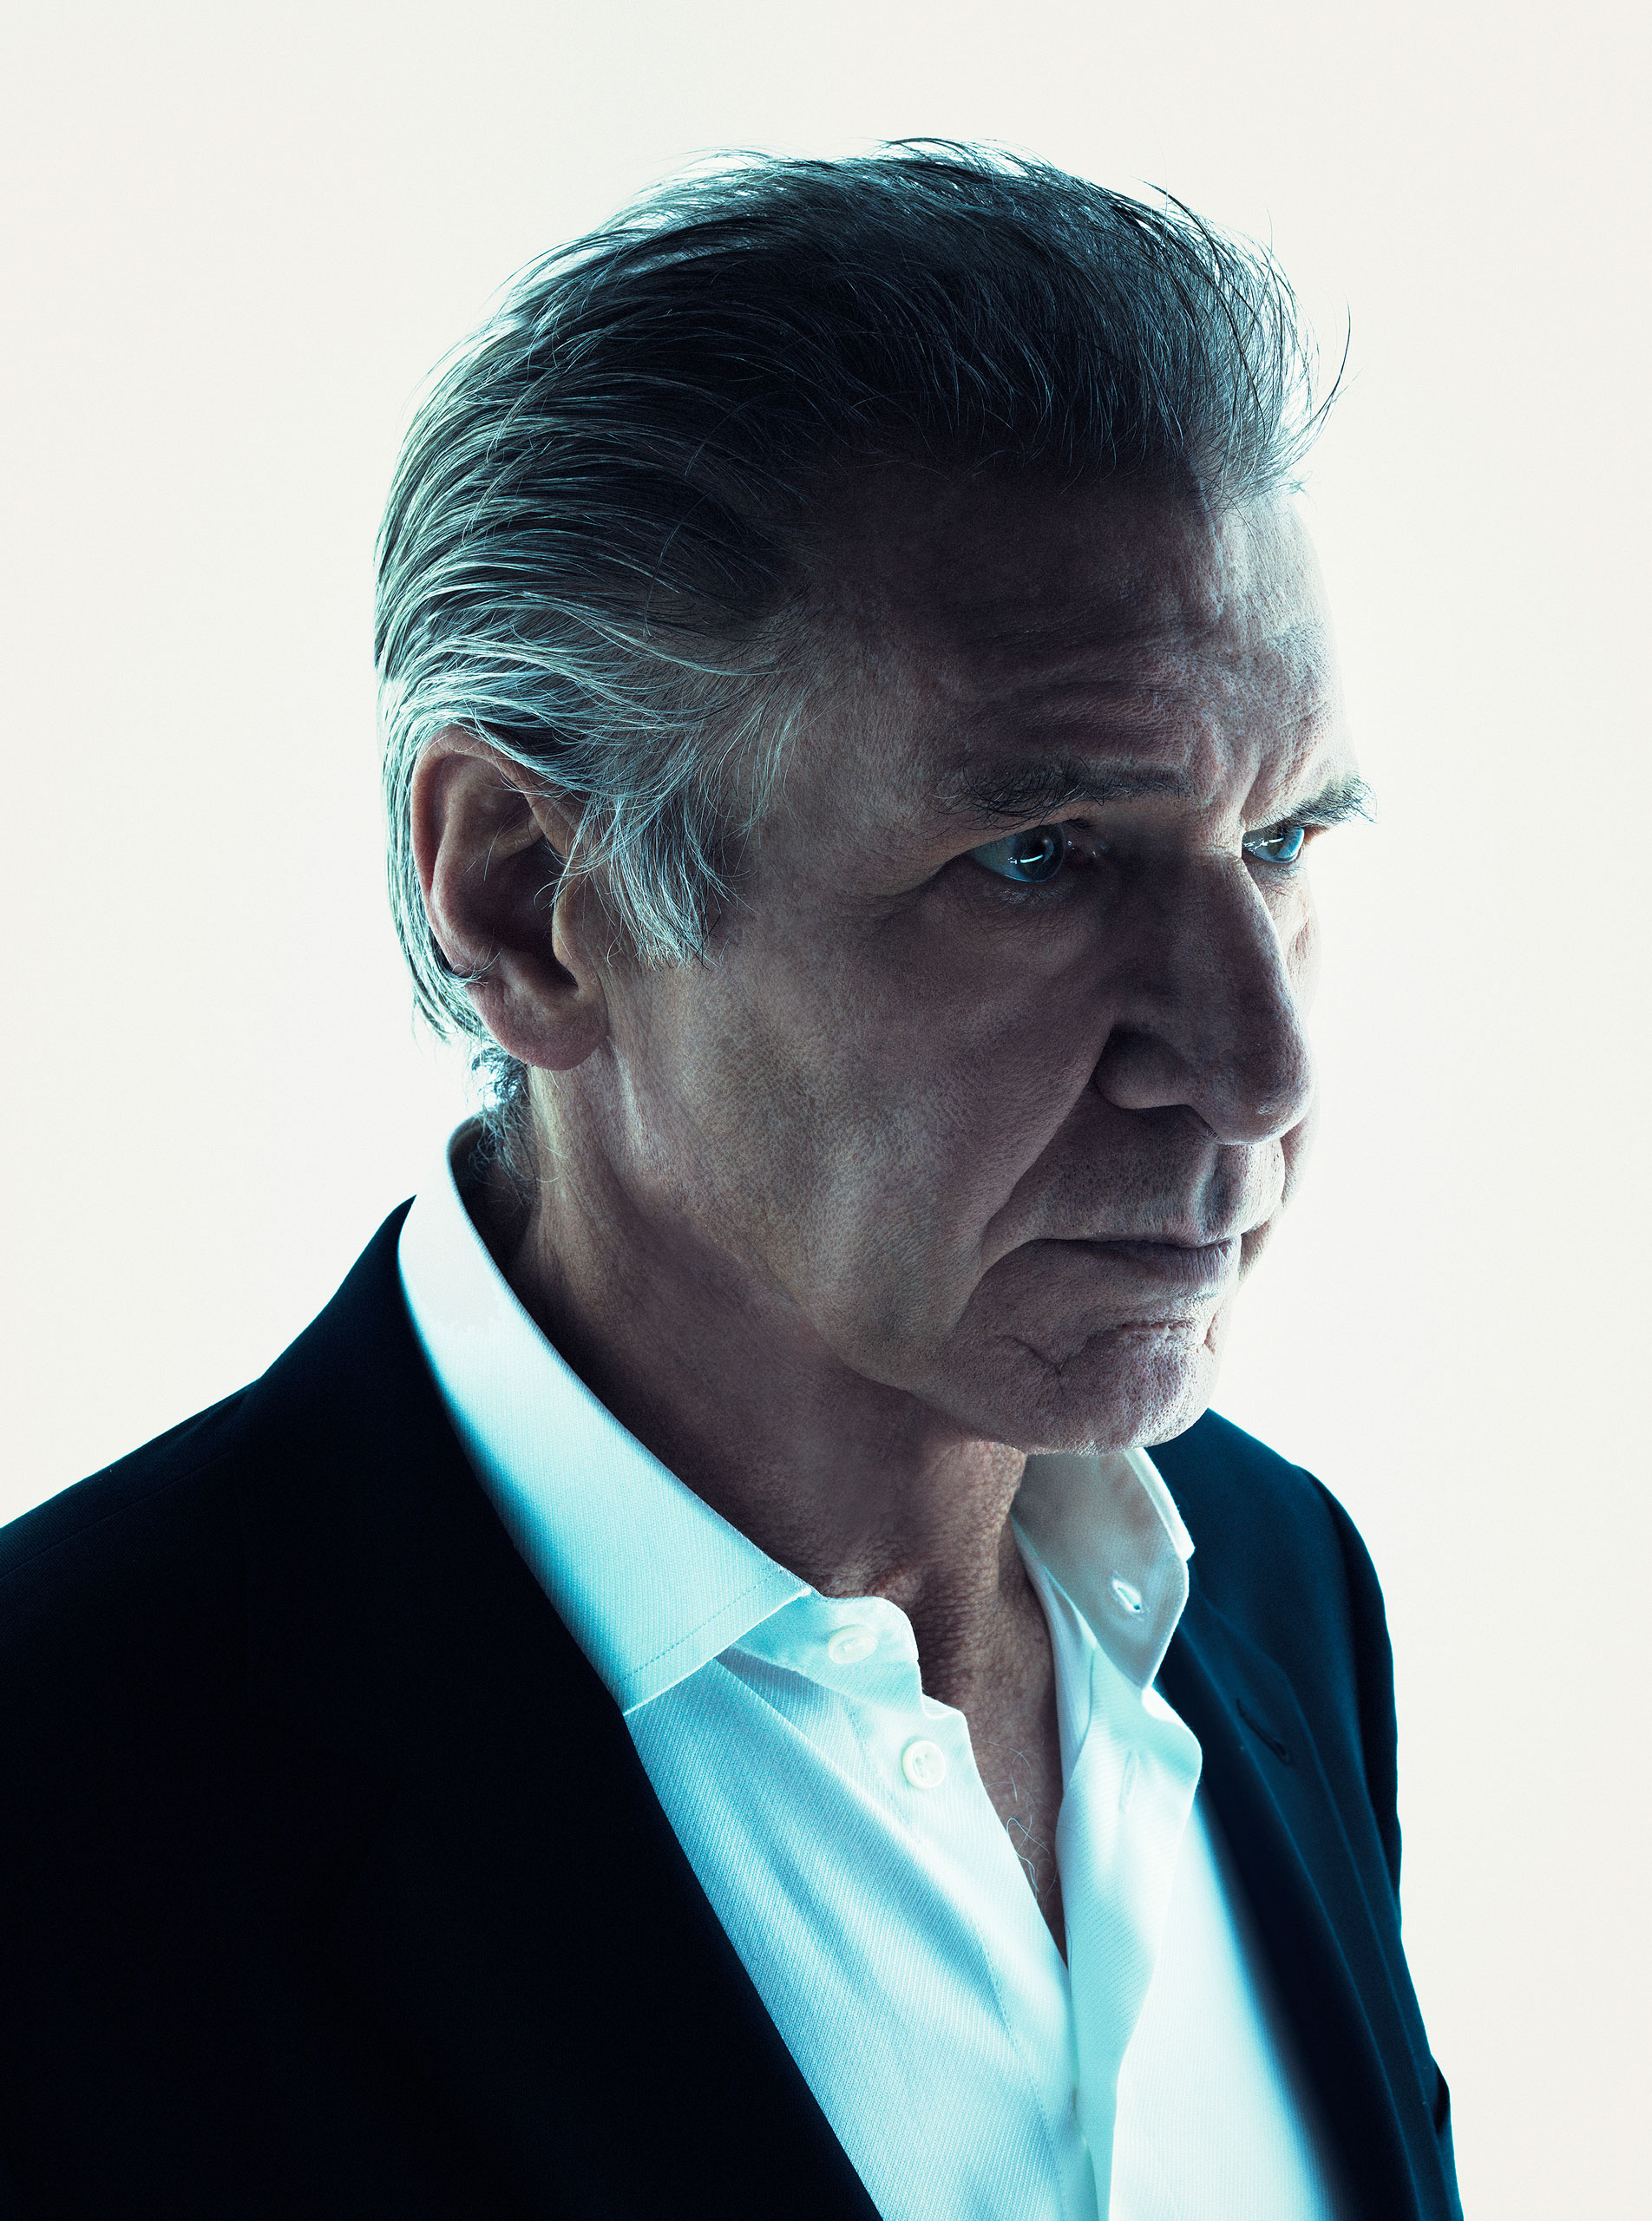 Harrison Ford photographed for TIME on October 16, 2015 in Los Angeles.